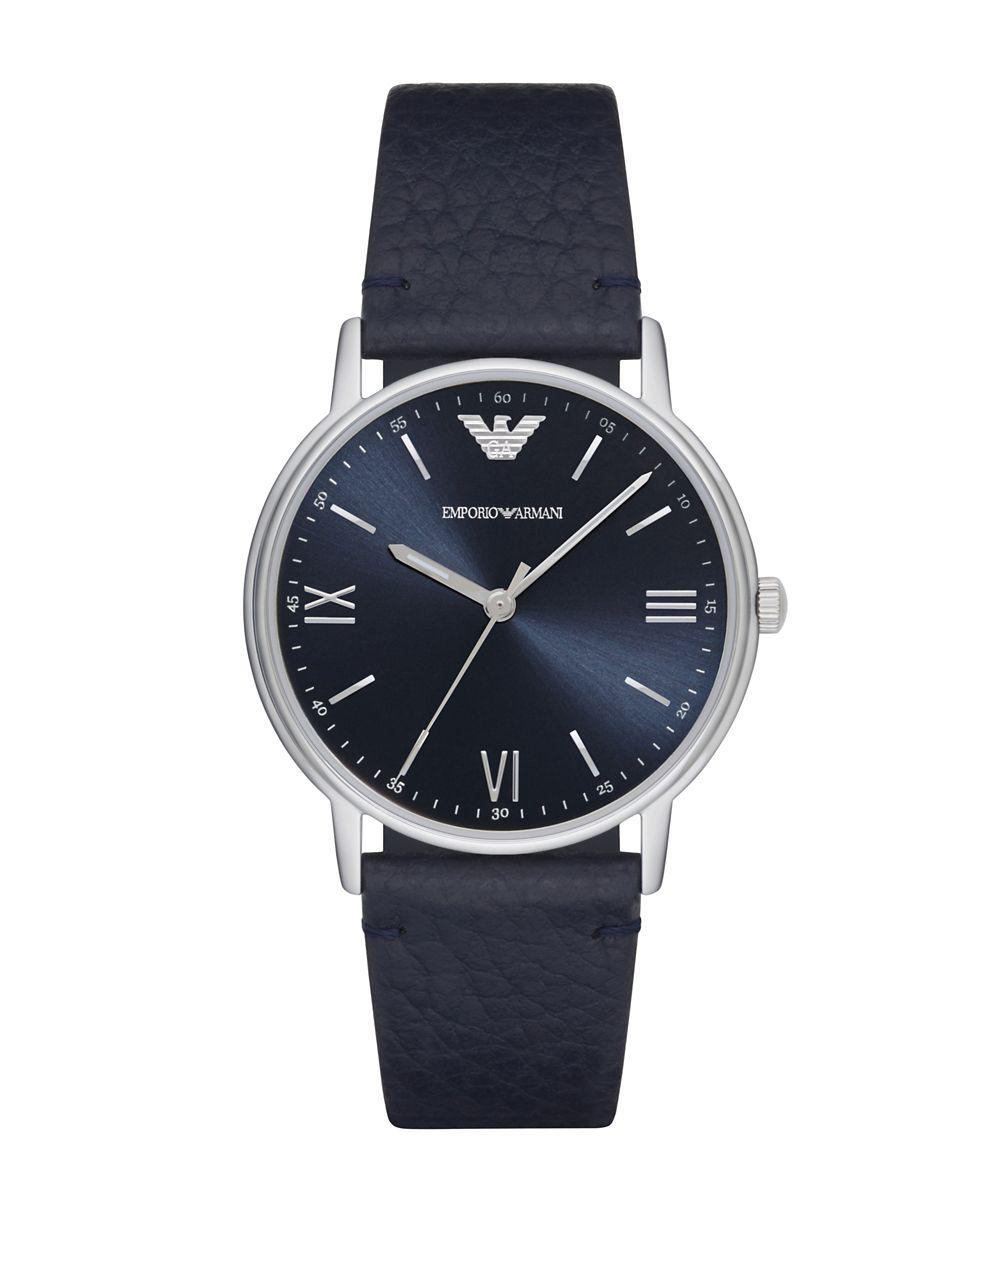 b6a11f3e5 Lyst - Emporio Armani Kappa Stainless Steel Leather-strap Watch in Blue